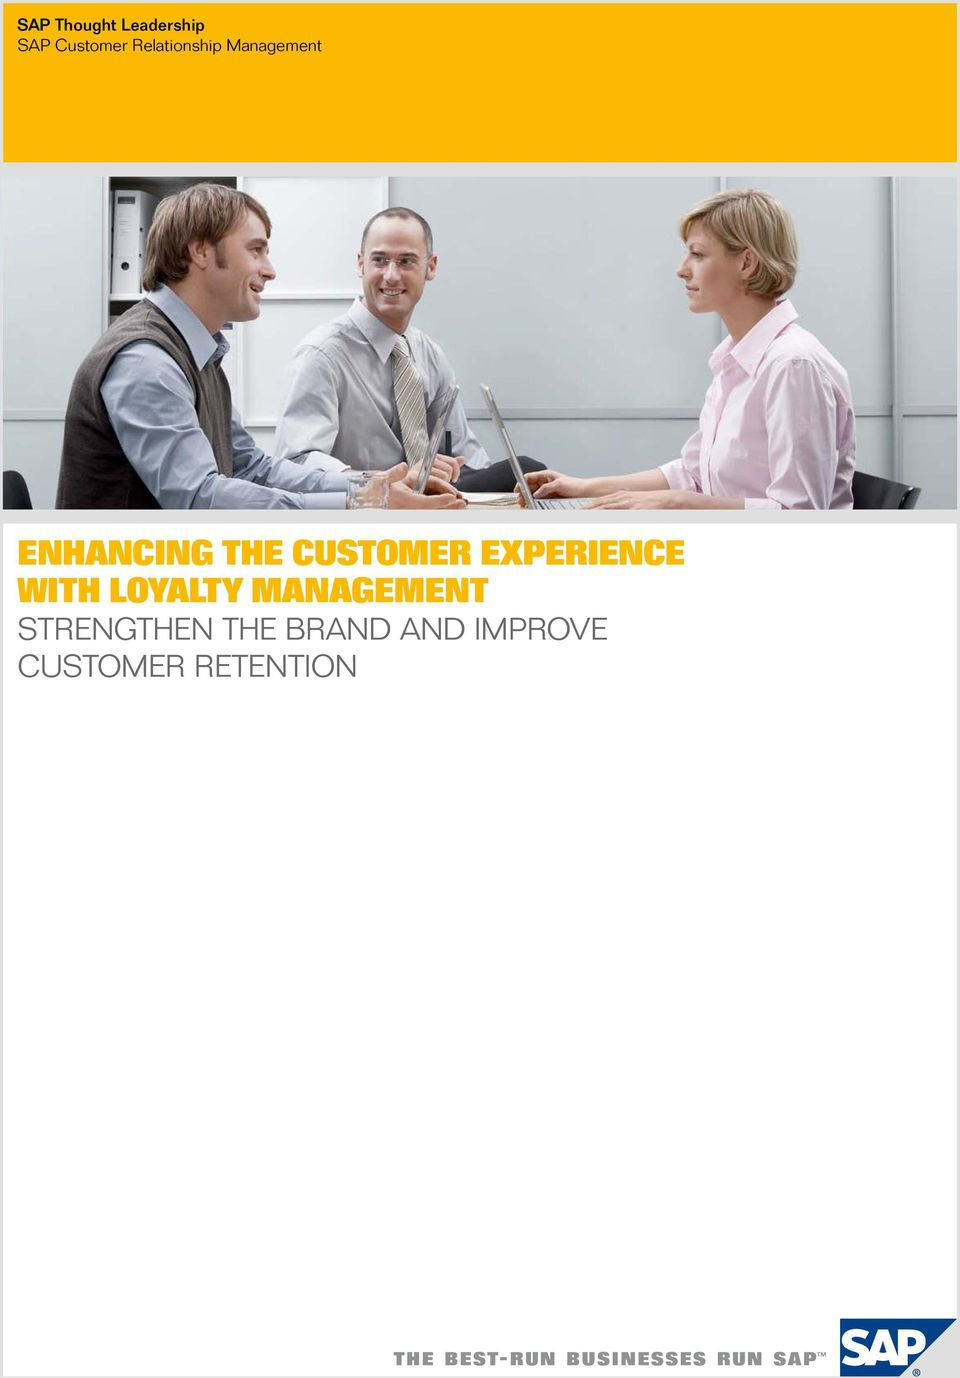 Customer Experience with Loyalty